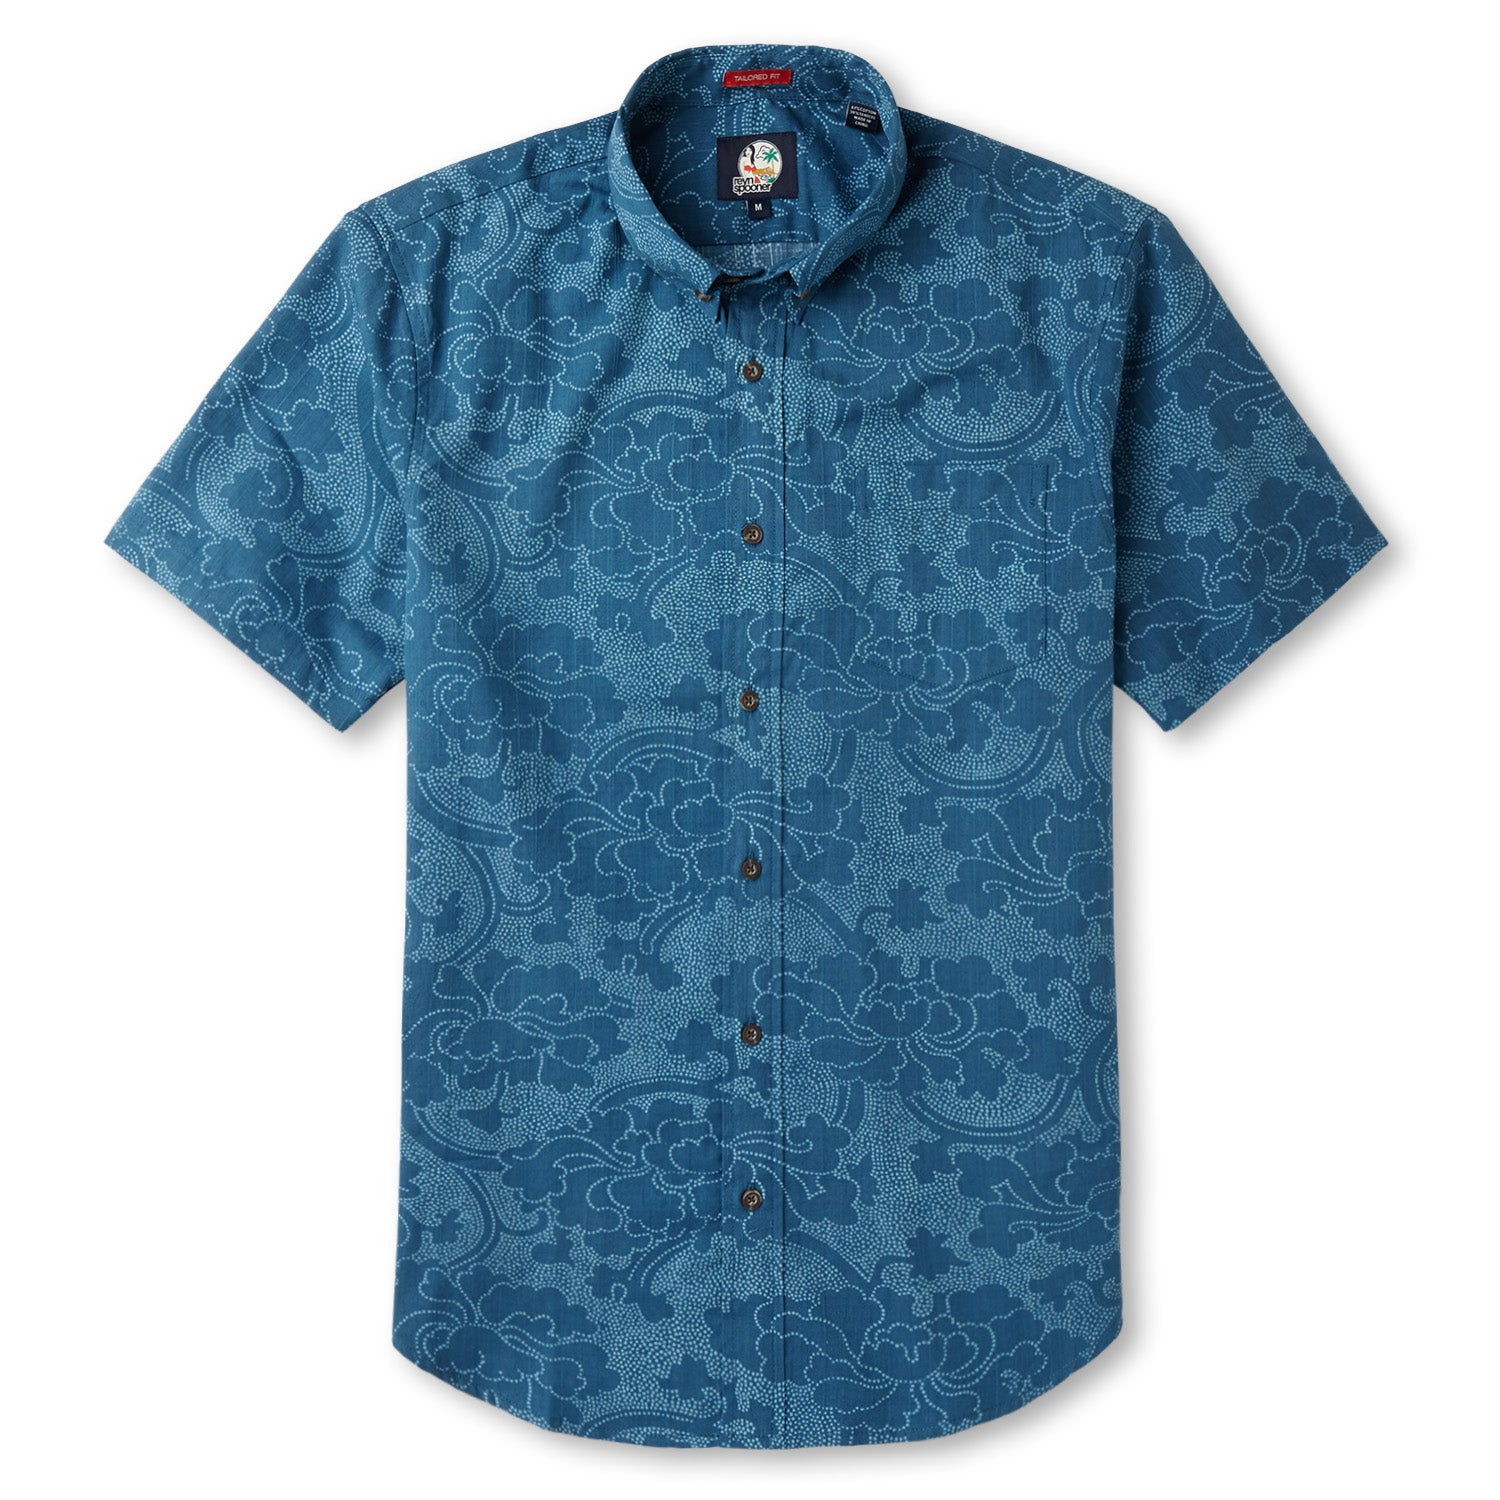 HOKU GARDEN / CLASSIC FIT - Zoomed